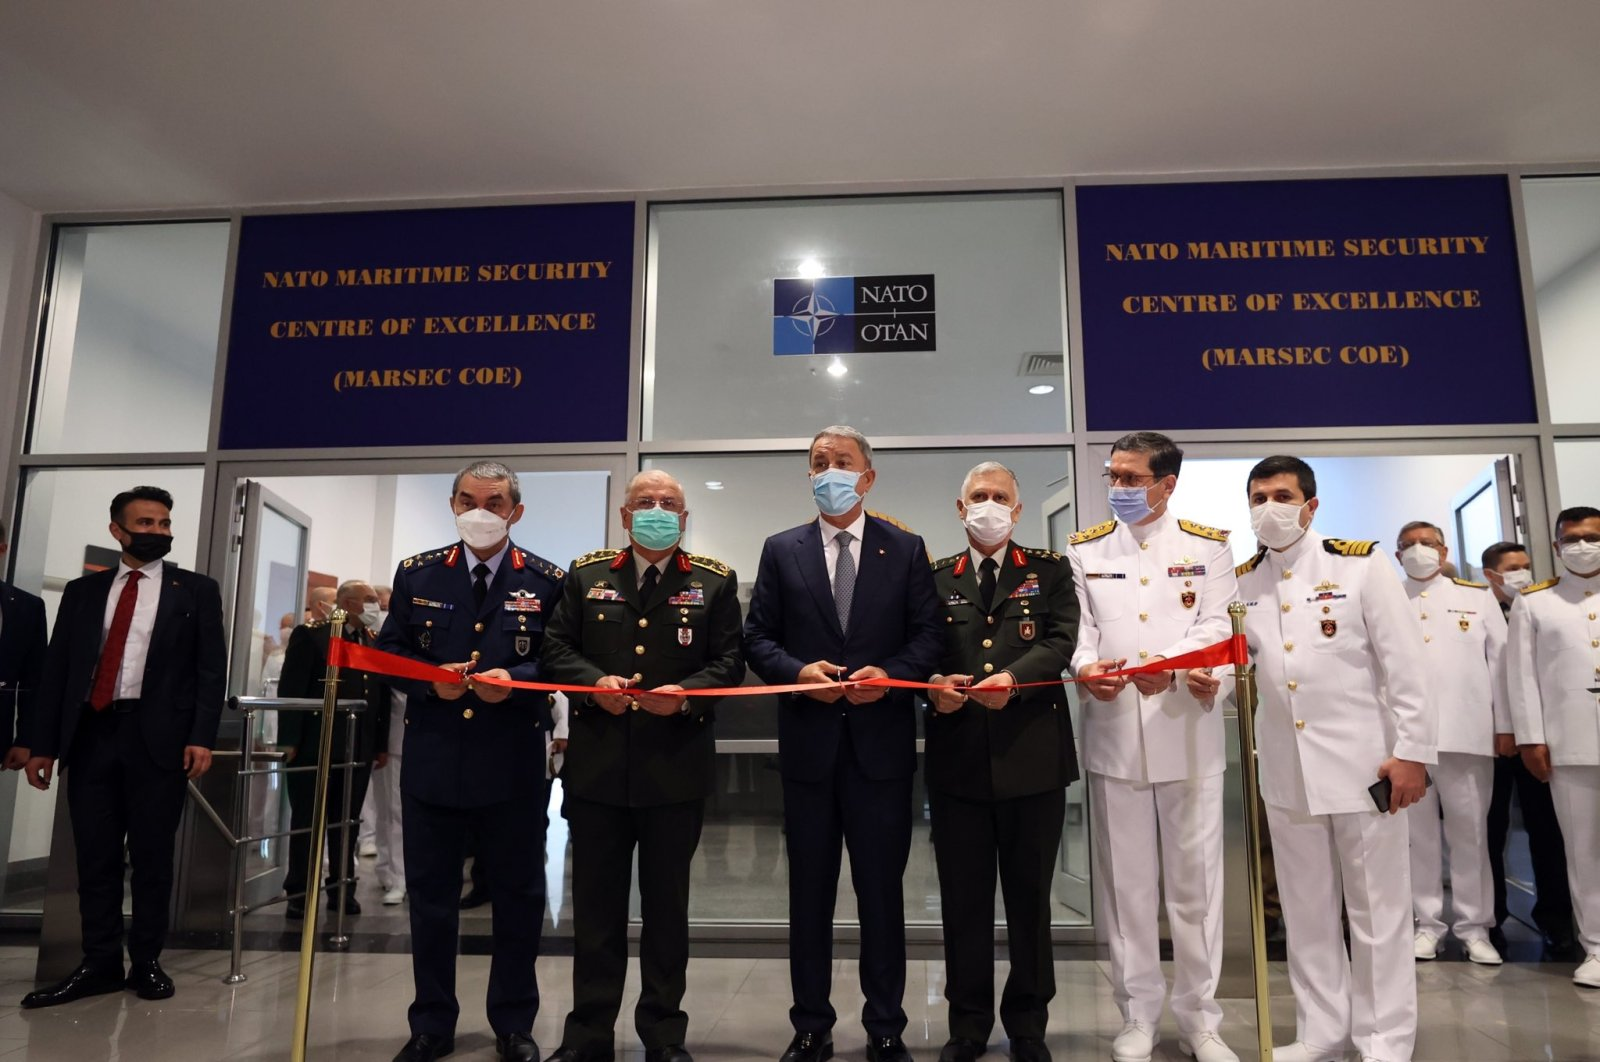 Turkish Defense Minister Hulusi Akar attends the opening ceremony of the NATO Maritime Security Center of Excellence in Istanbul, Turkey, June 11, 2021. (DHA Photo)